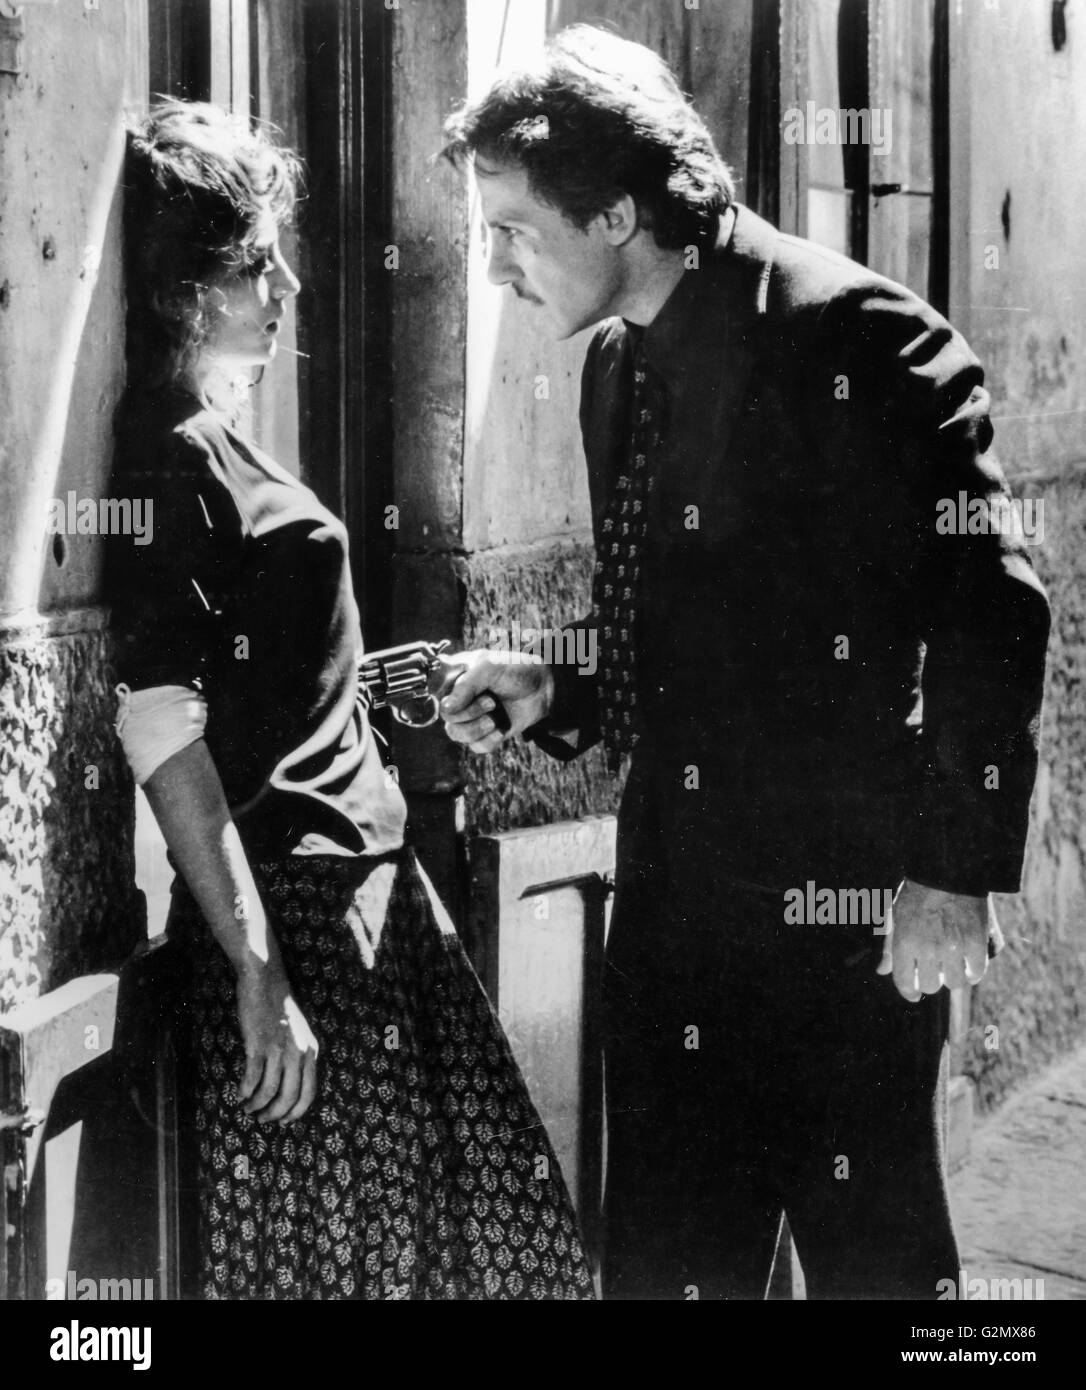 Angela Molina,Harvey Keitel in Camorra,1985 - Stock Image